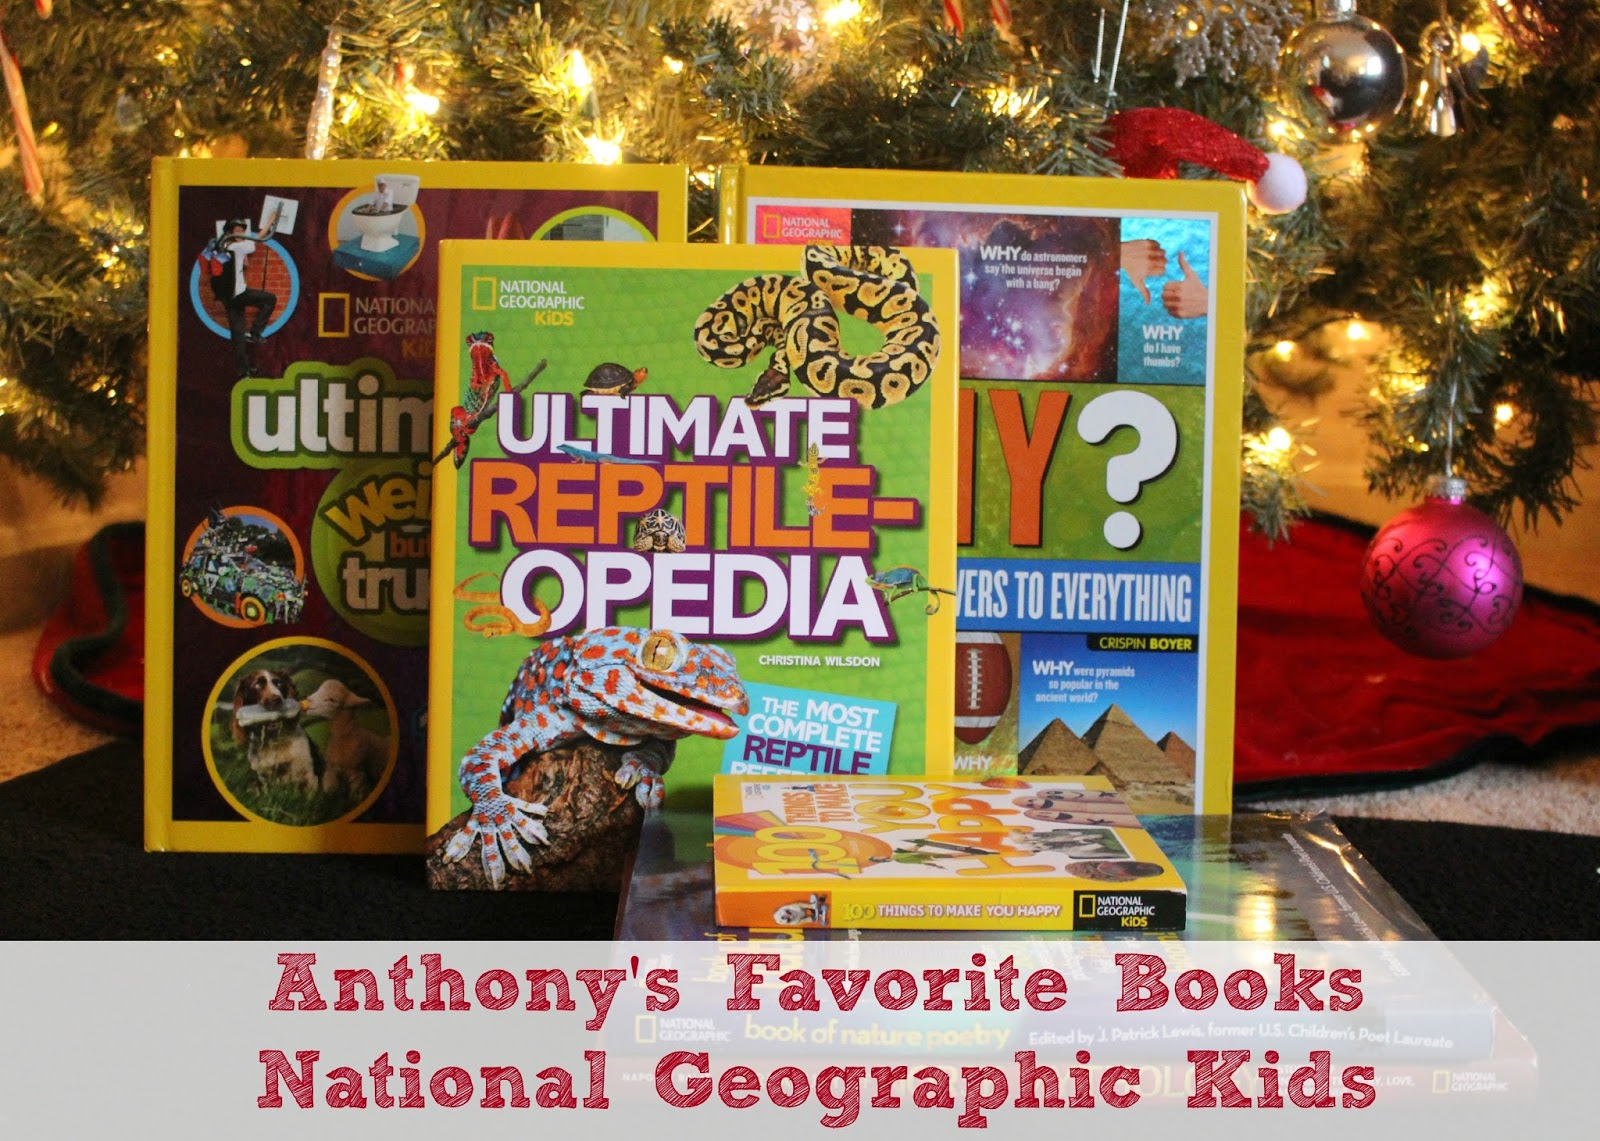 Anthony's Favorite National Geographic Kids Books